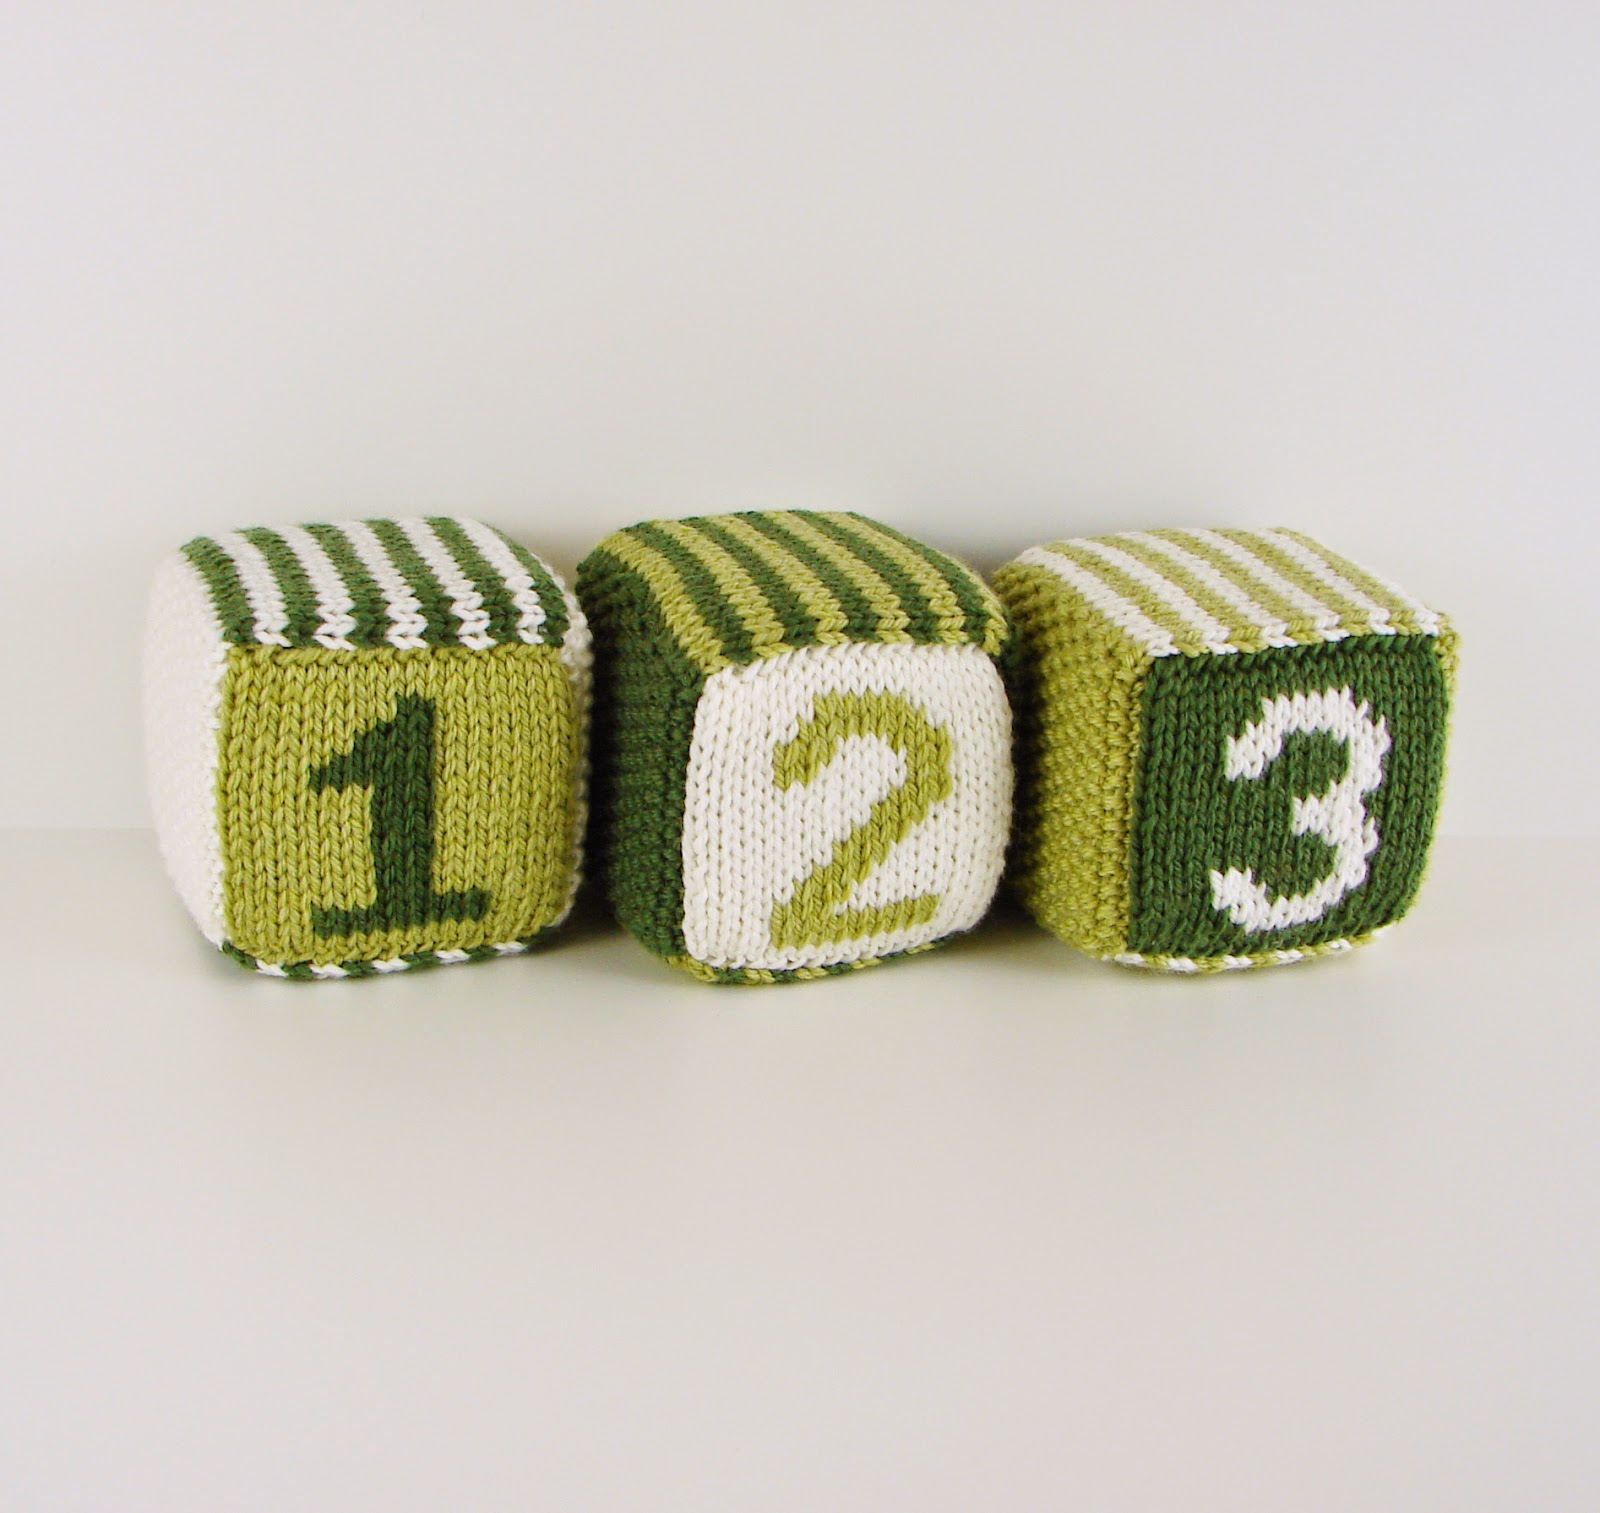 knit, blocks, foam, toys, hand knit, letter, number, striped, white, green